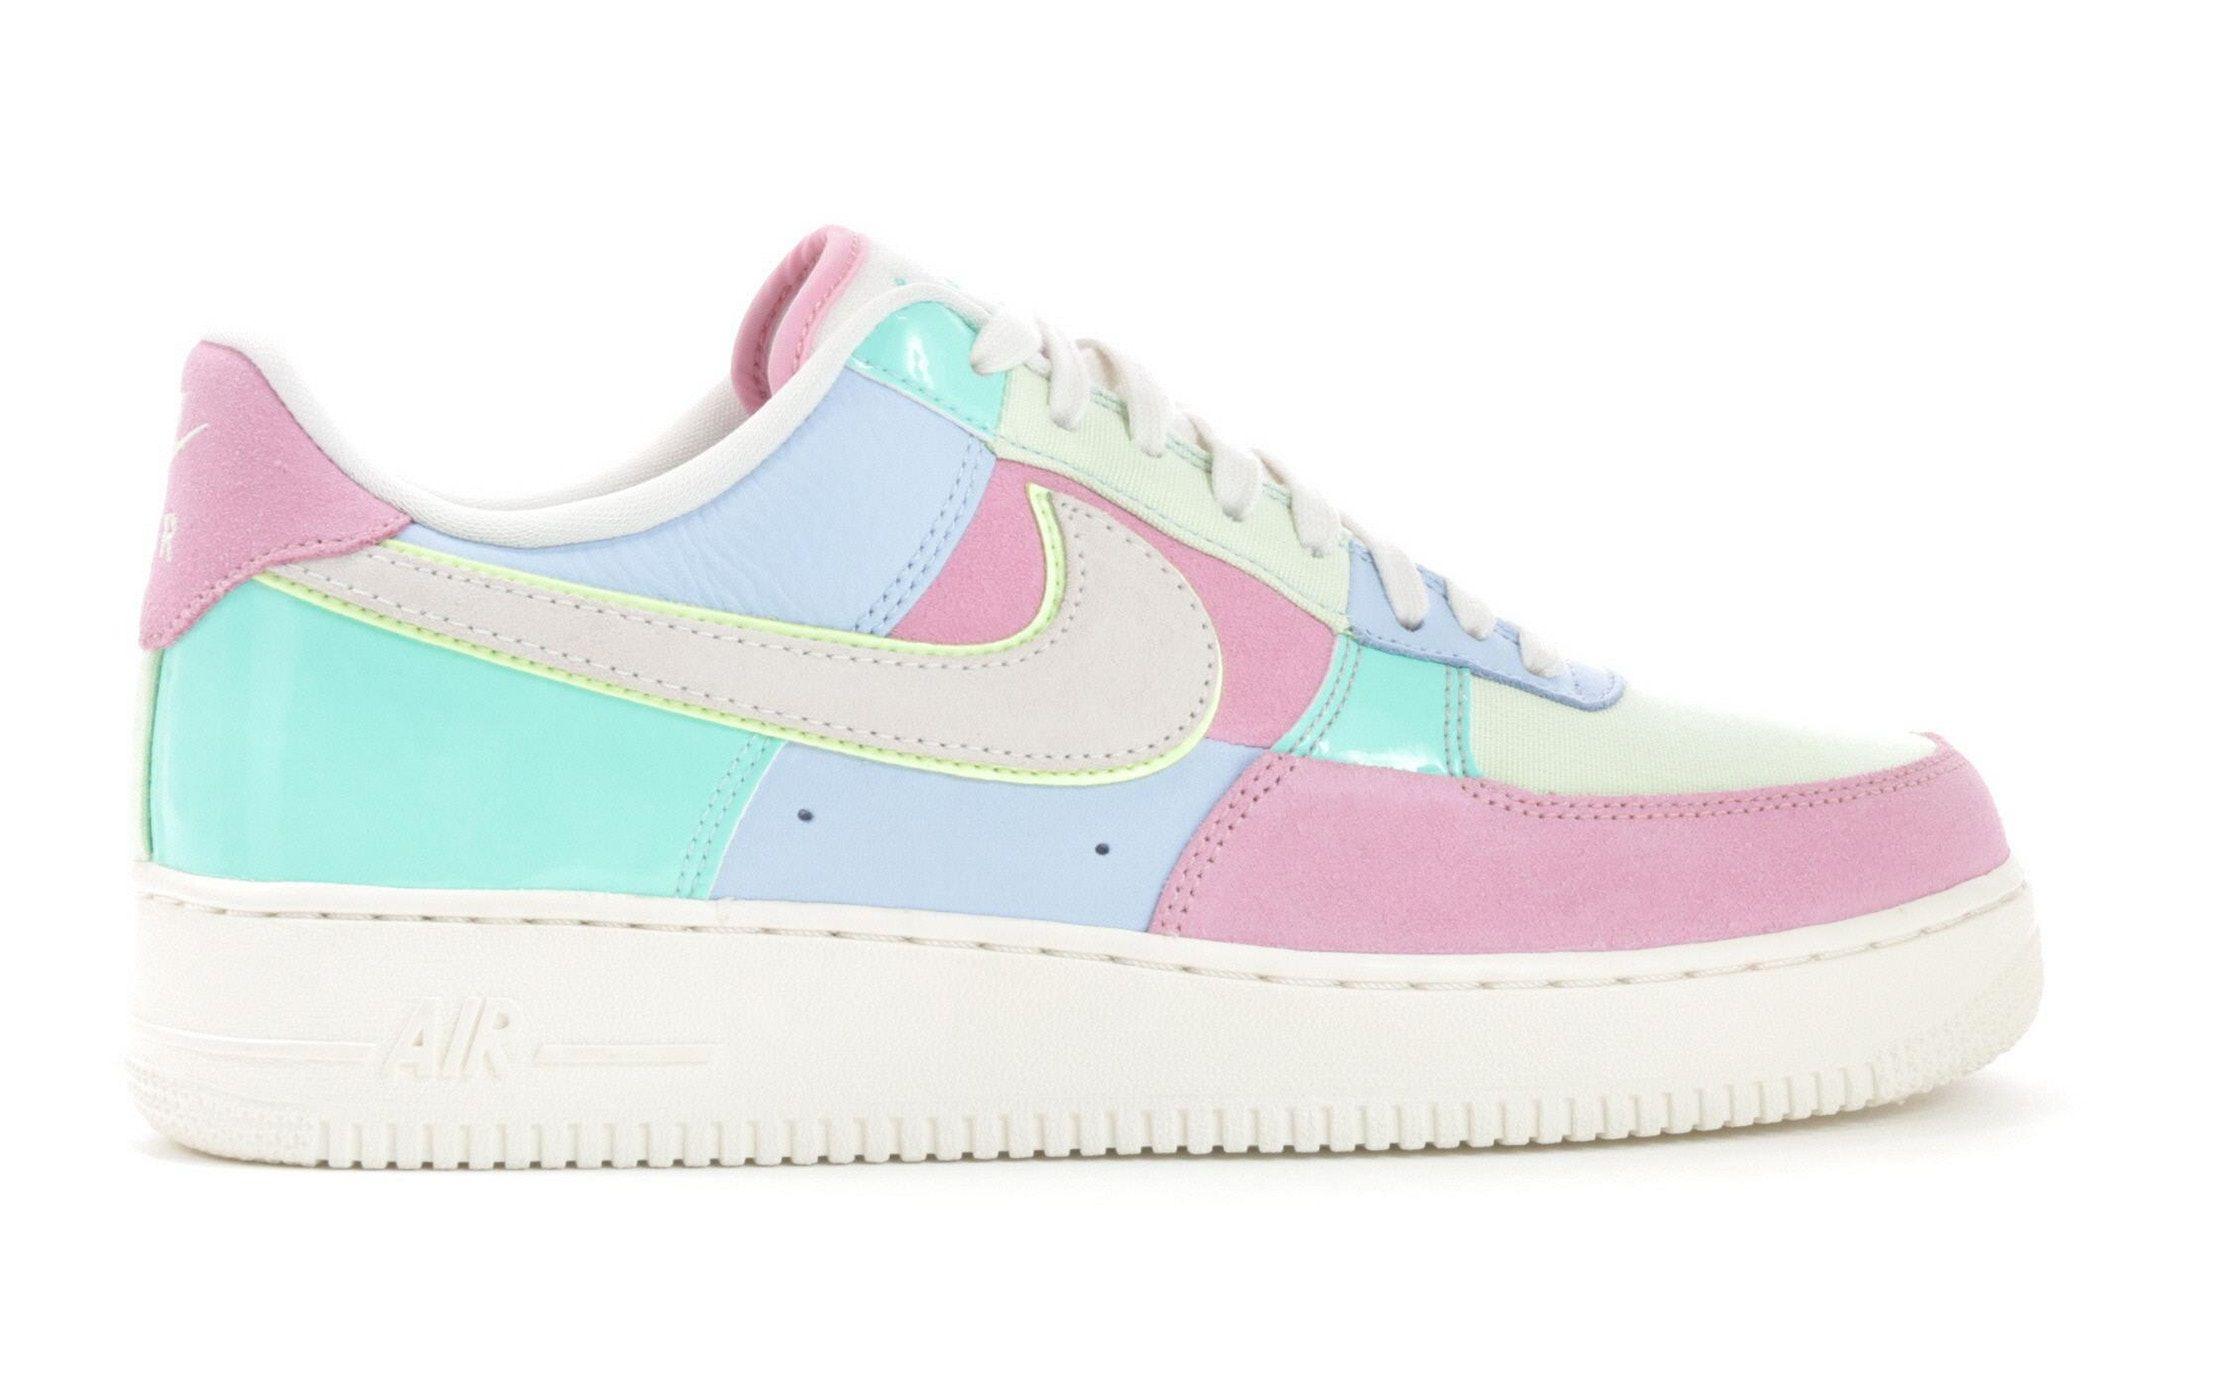 Nike Force 1 Low Easter (2018) | Nike shoes air force, Nike